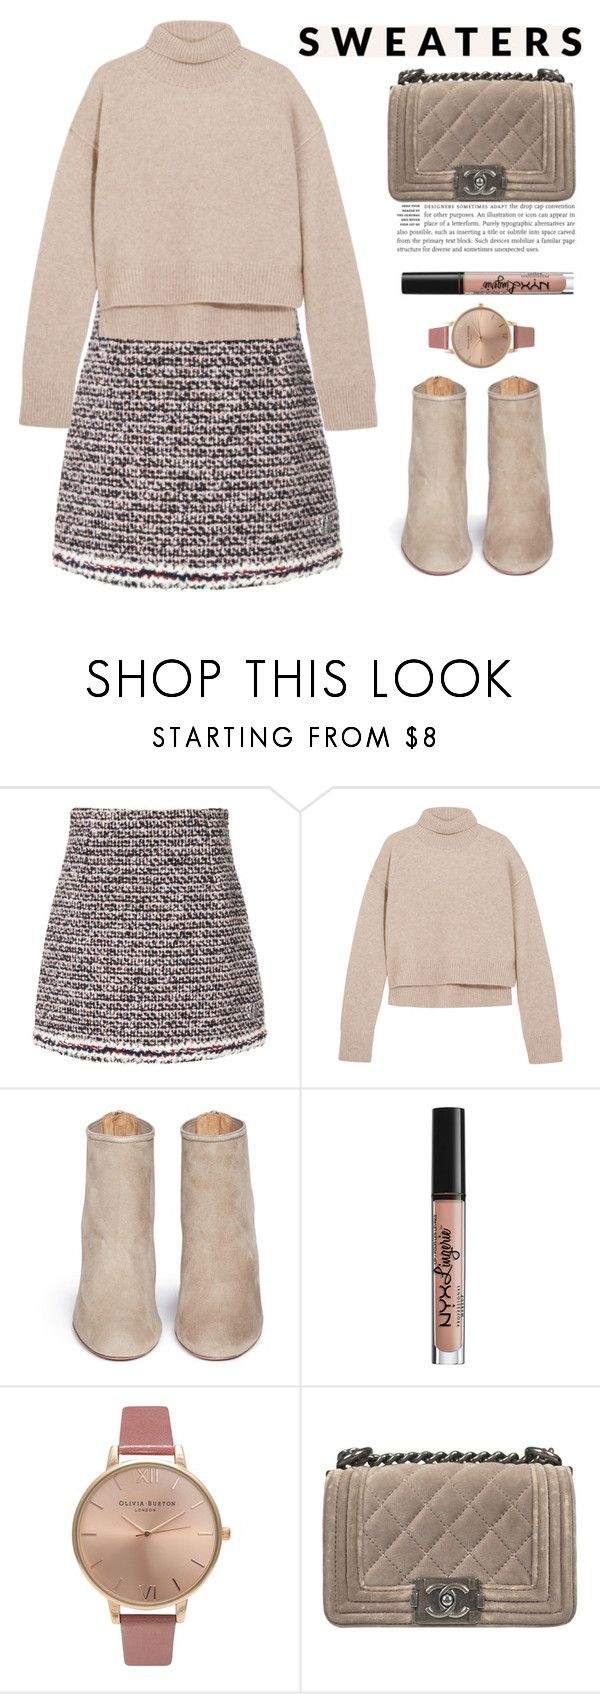 """Untitled #739"" by jovana-p-com ❤ liked on Polyvore featuring Moncler Gamme Rouge, Rejina Pyo, Aquazzura, NYX, Olivia Burton and Chanel"